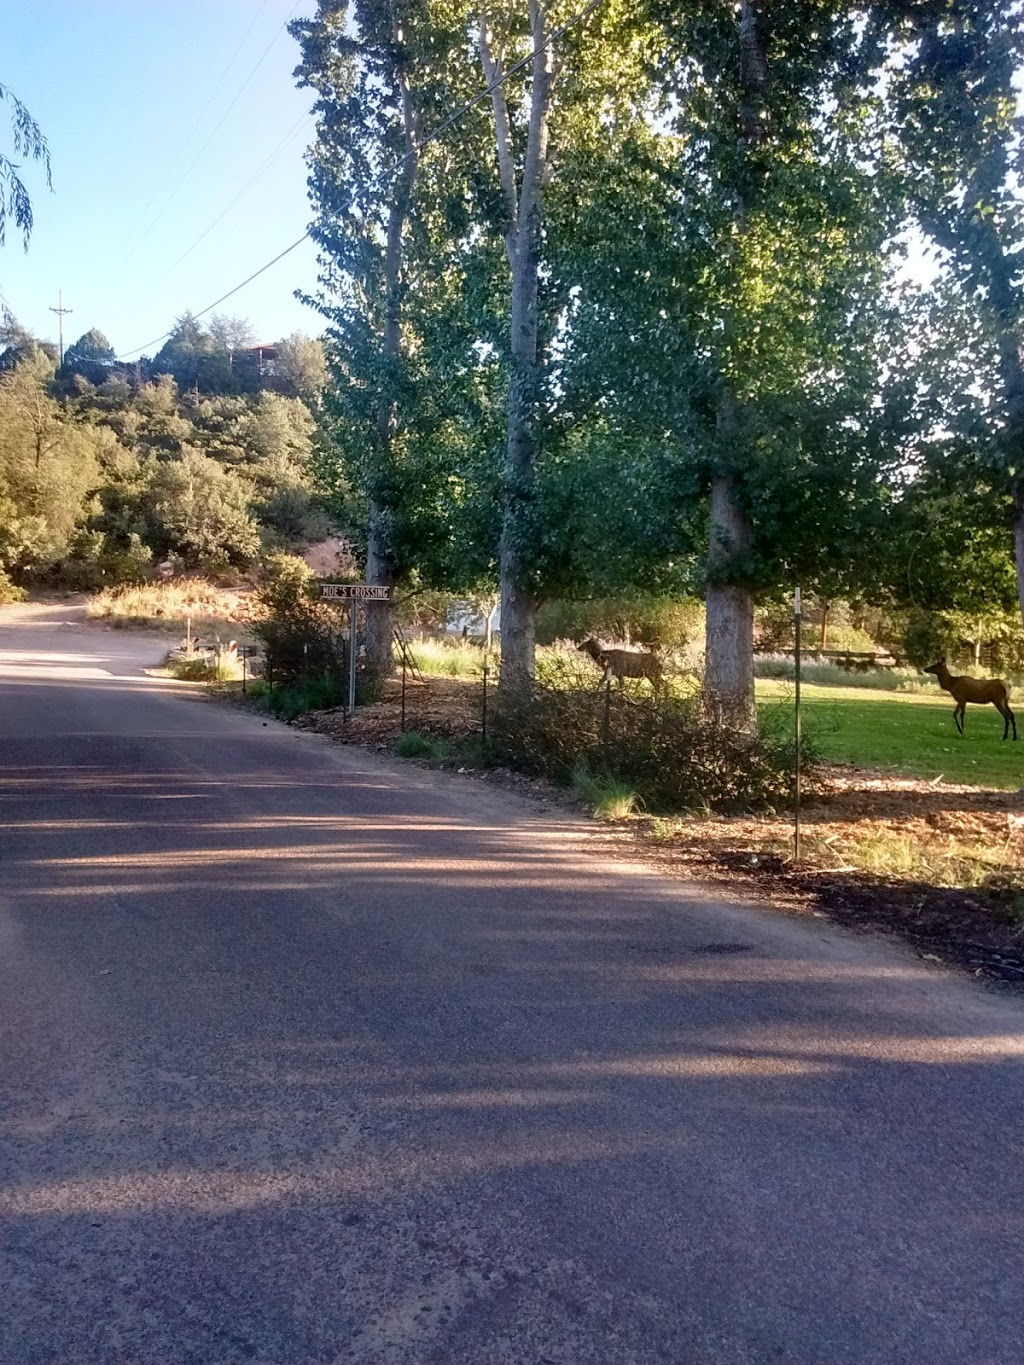 Shady Haven RV Park | lodging | 141 West W Haught Rd, Payson, AZ 85541, USA | 9284748222 OR +1 928-474-8222